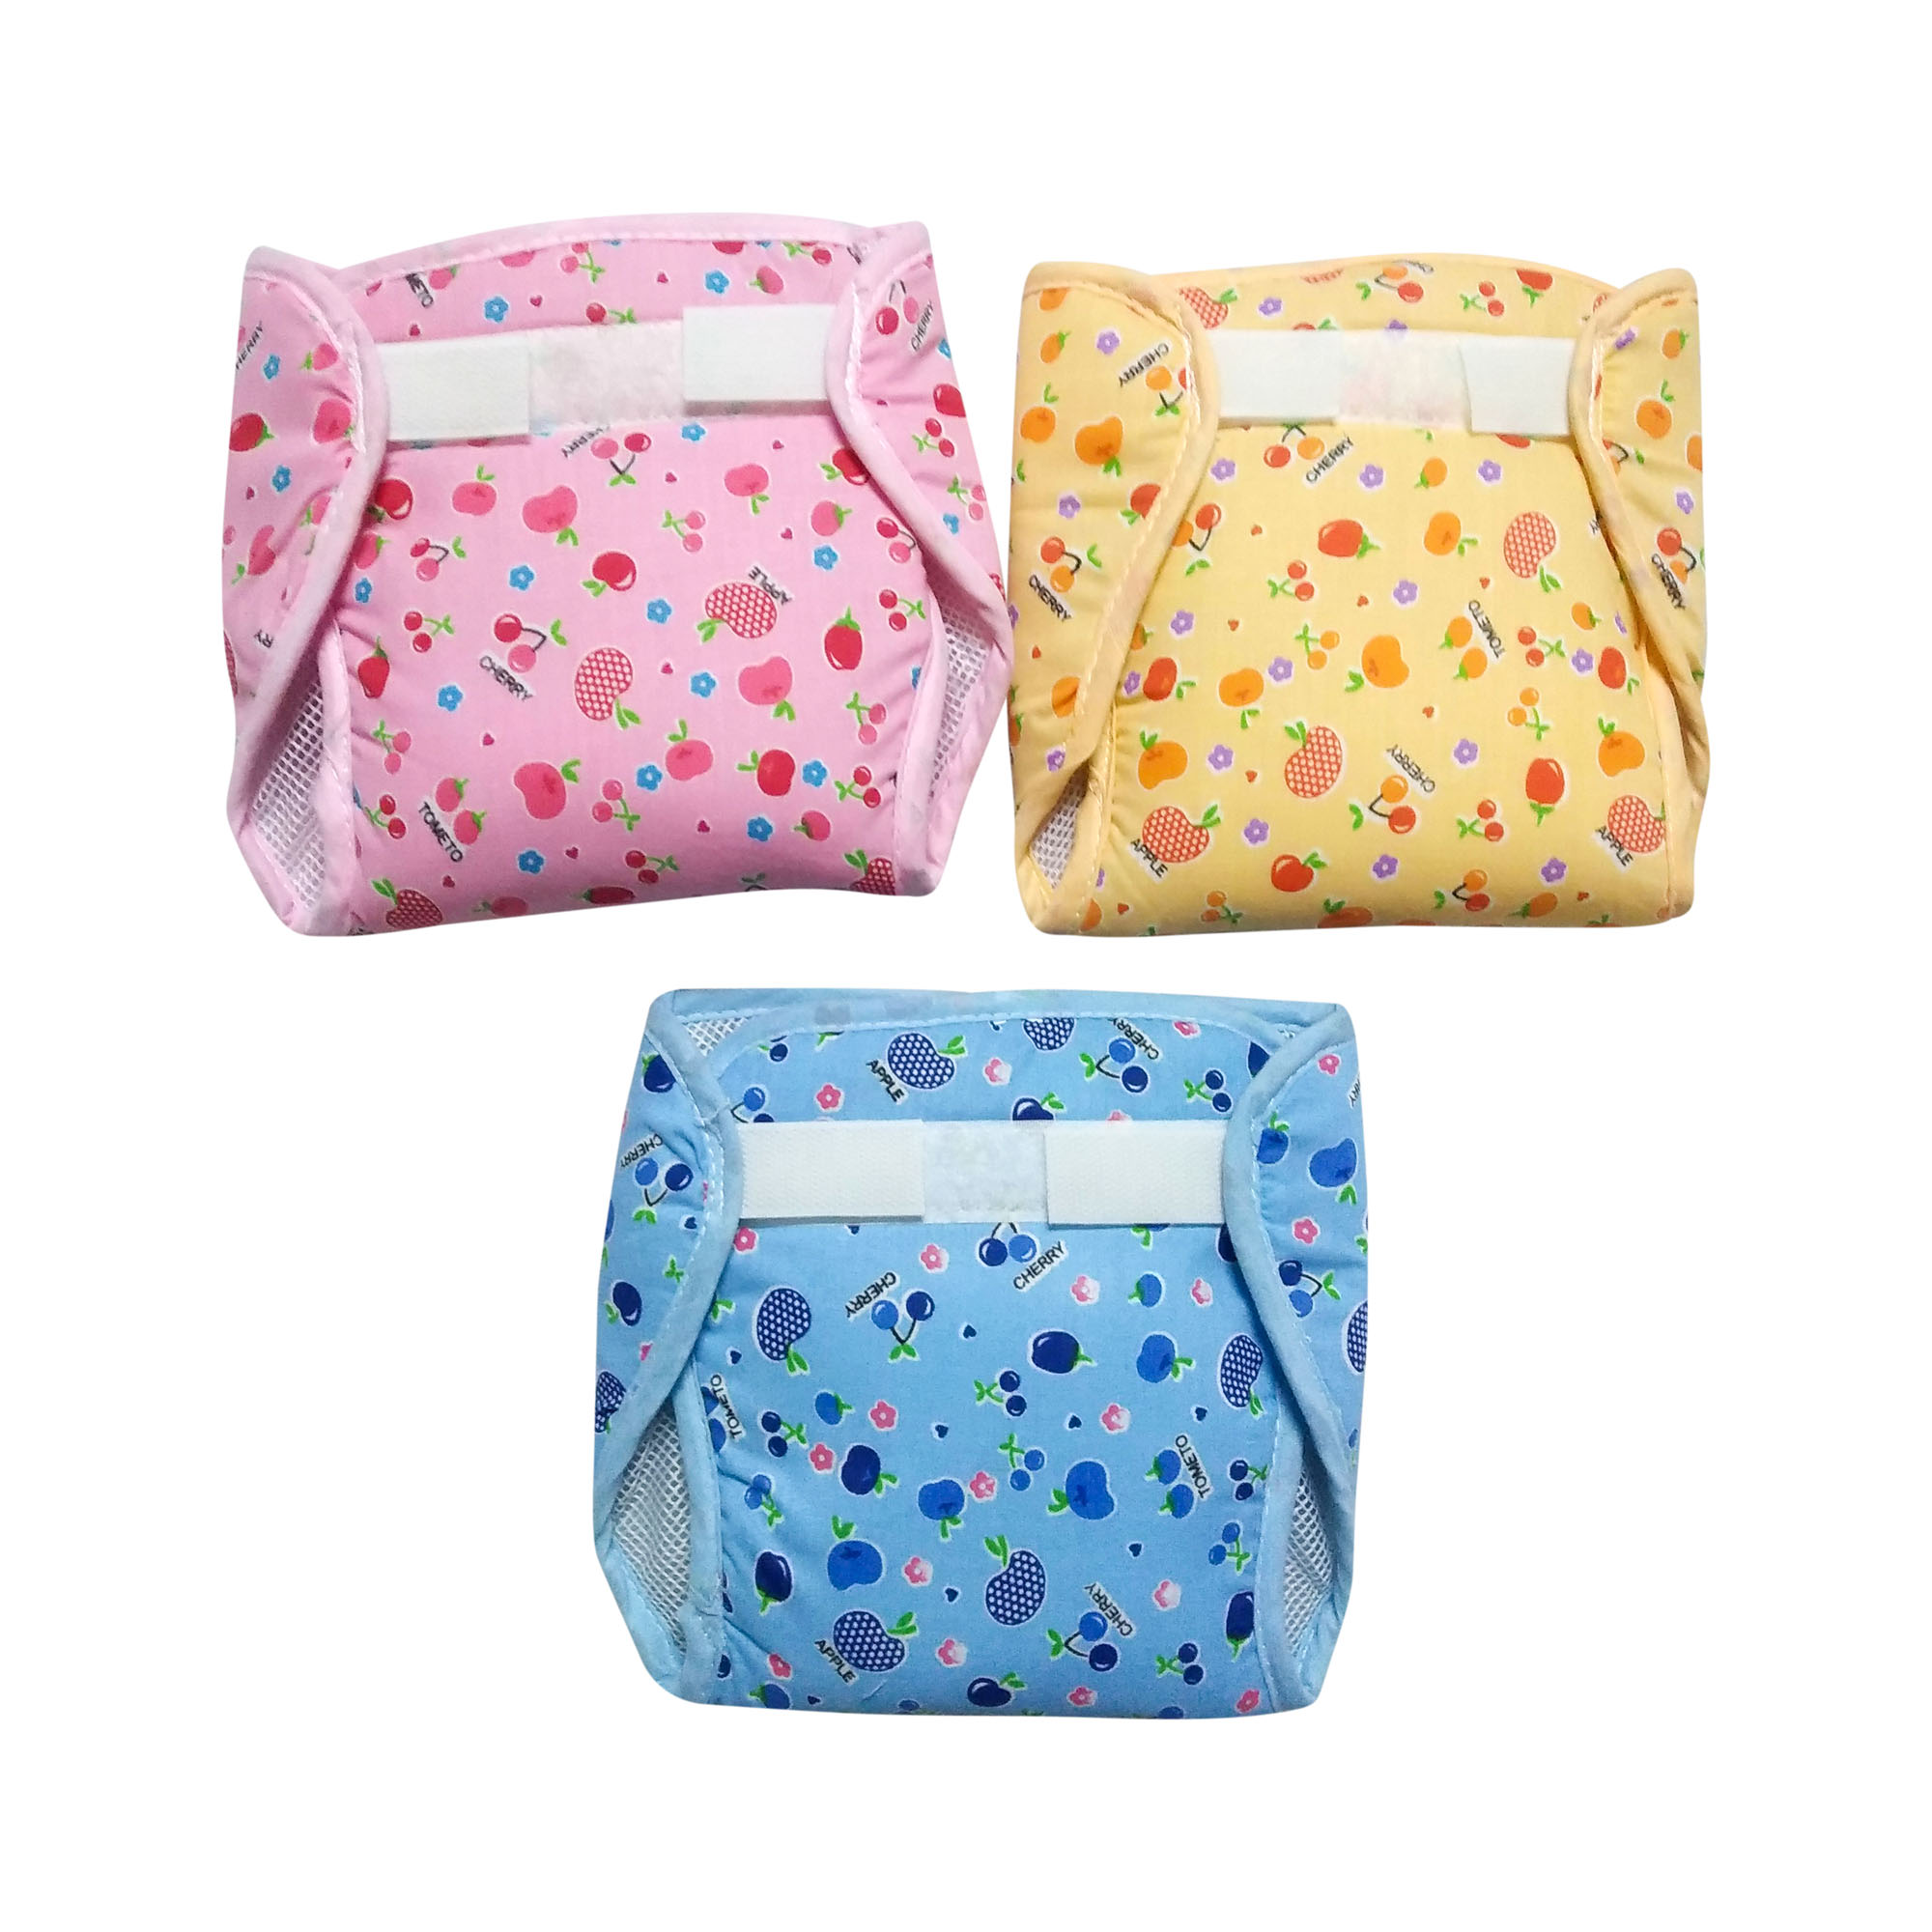 Set of 3 Assorted Net Diaper by Love Baby - 537 L Combo P5